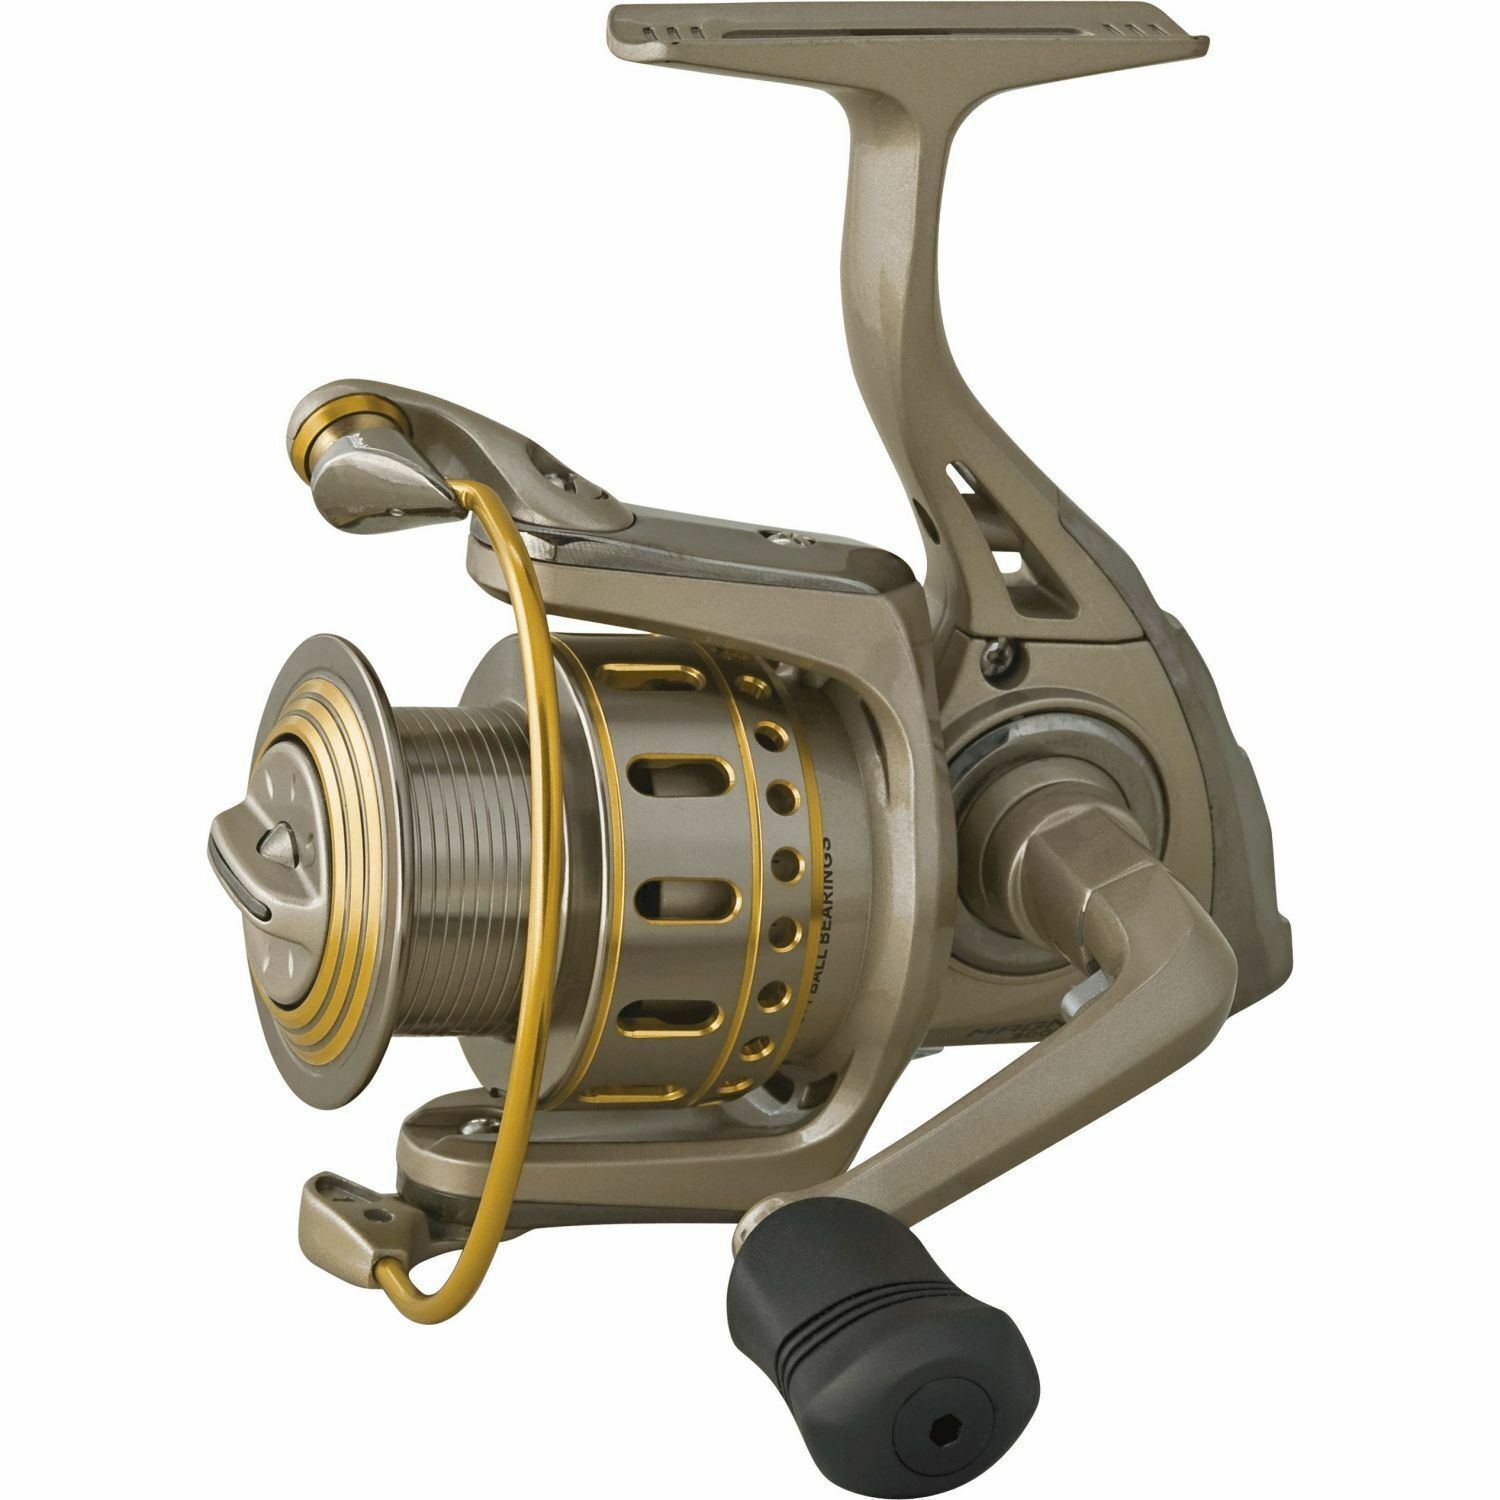 Trabucco Magnex 3000 Fishing Reel High Performance Front Drag Stainless Bearings